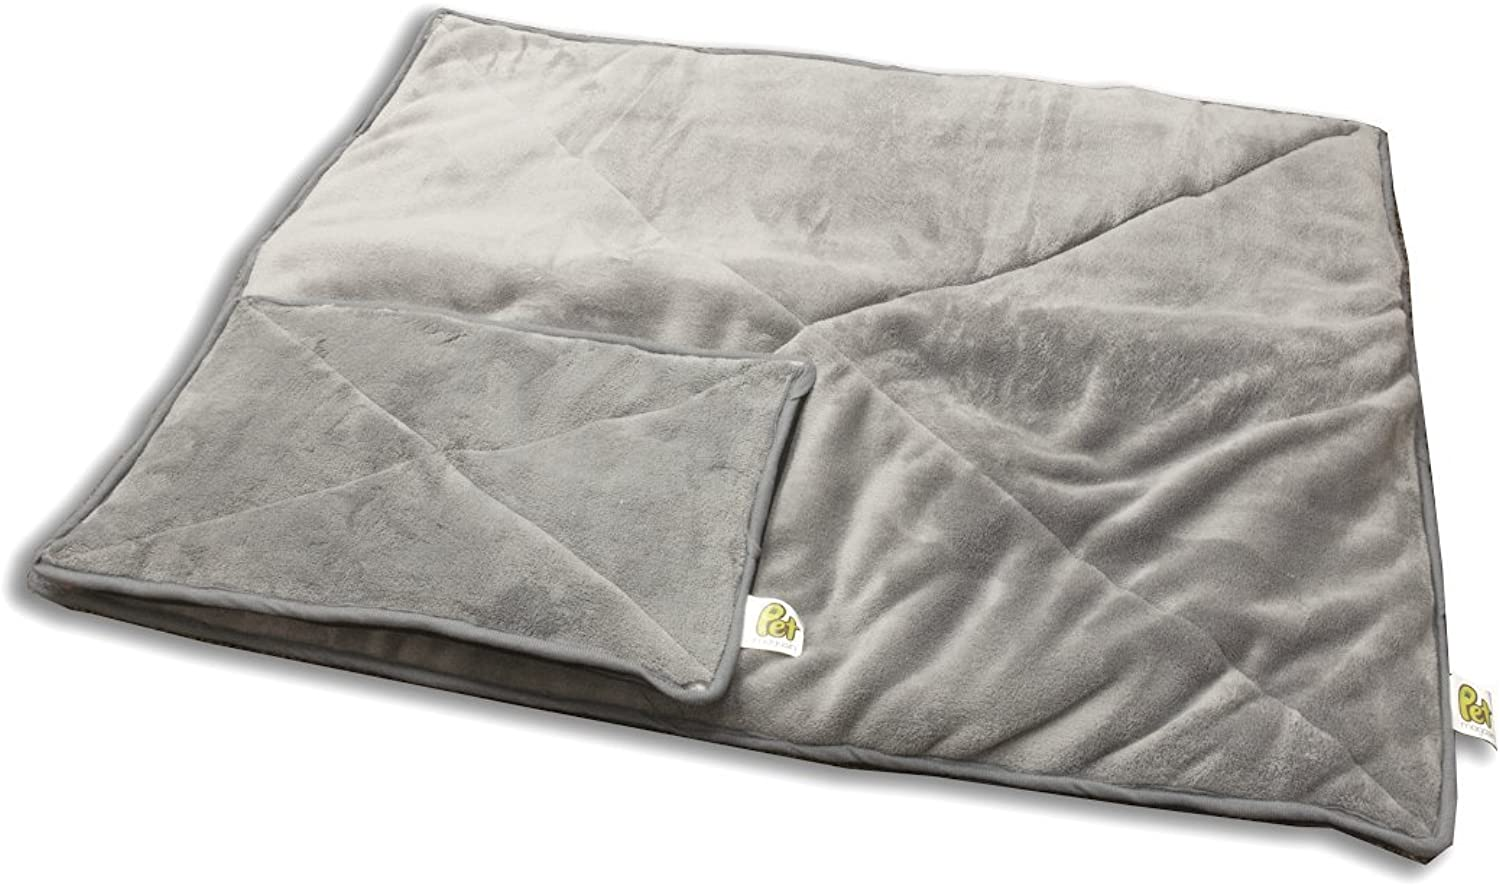 Cat Bed  Large Thermal SelfHeating Bed Pads for Cats, Dogs, Puppies and Other Small House Pets by Pet Magasin by Pet Magasin